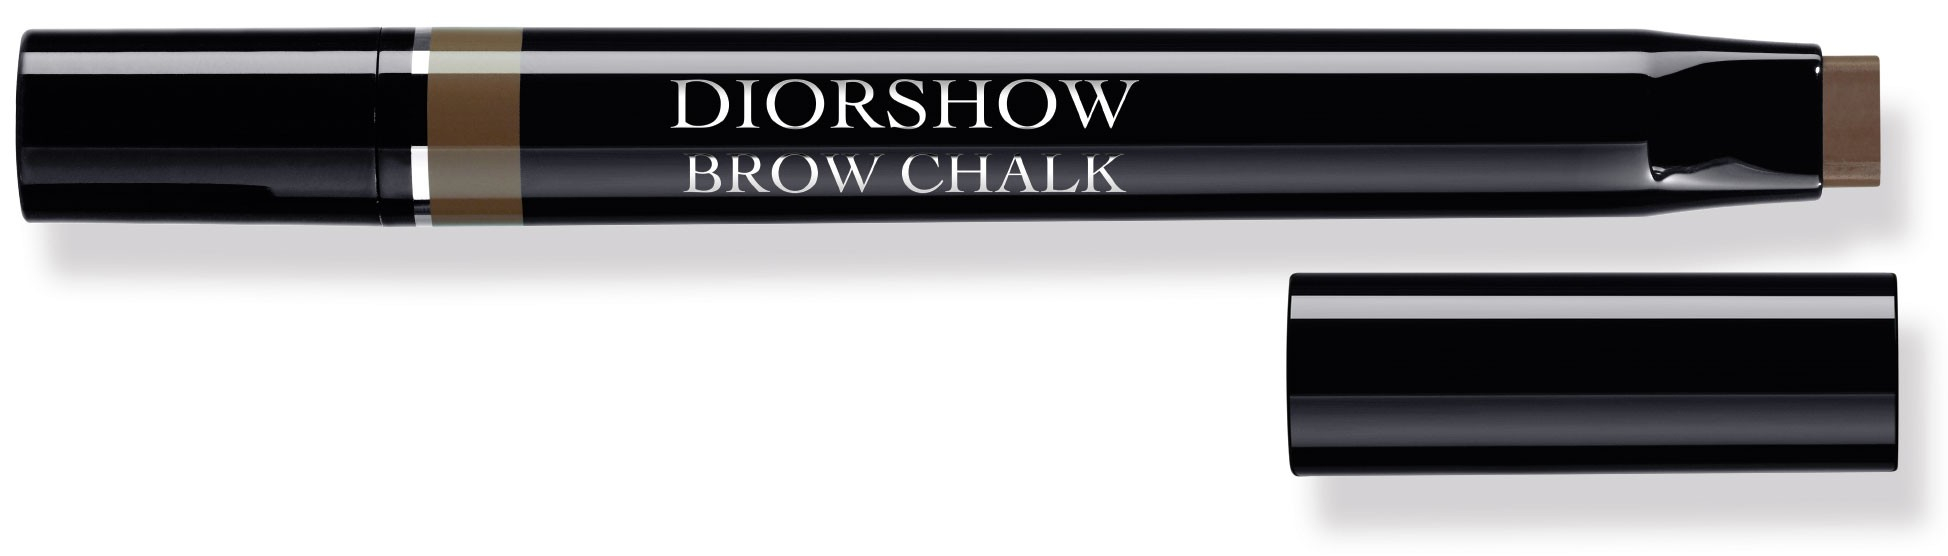 Dior kolekcja Autumn/Fall 2016 Skyline DiorShow Brow Chalk